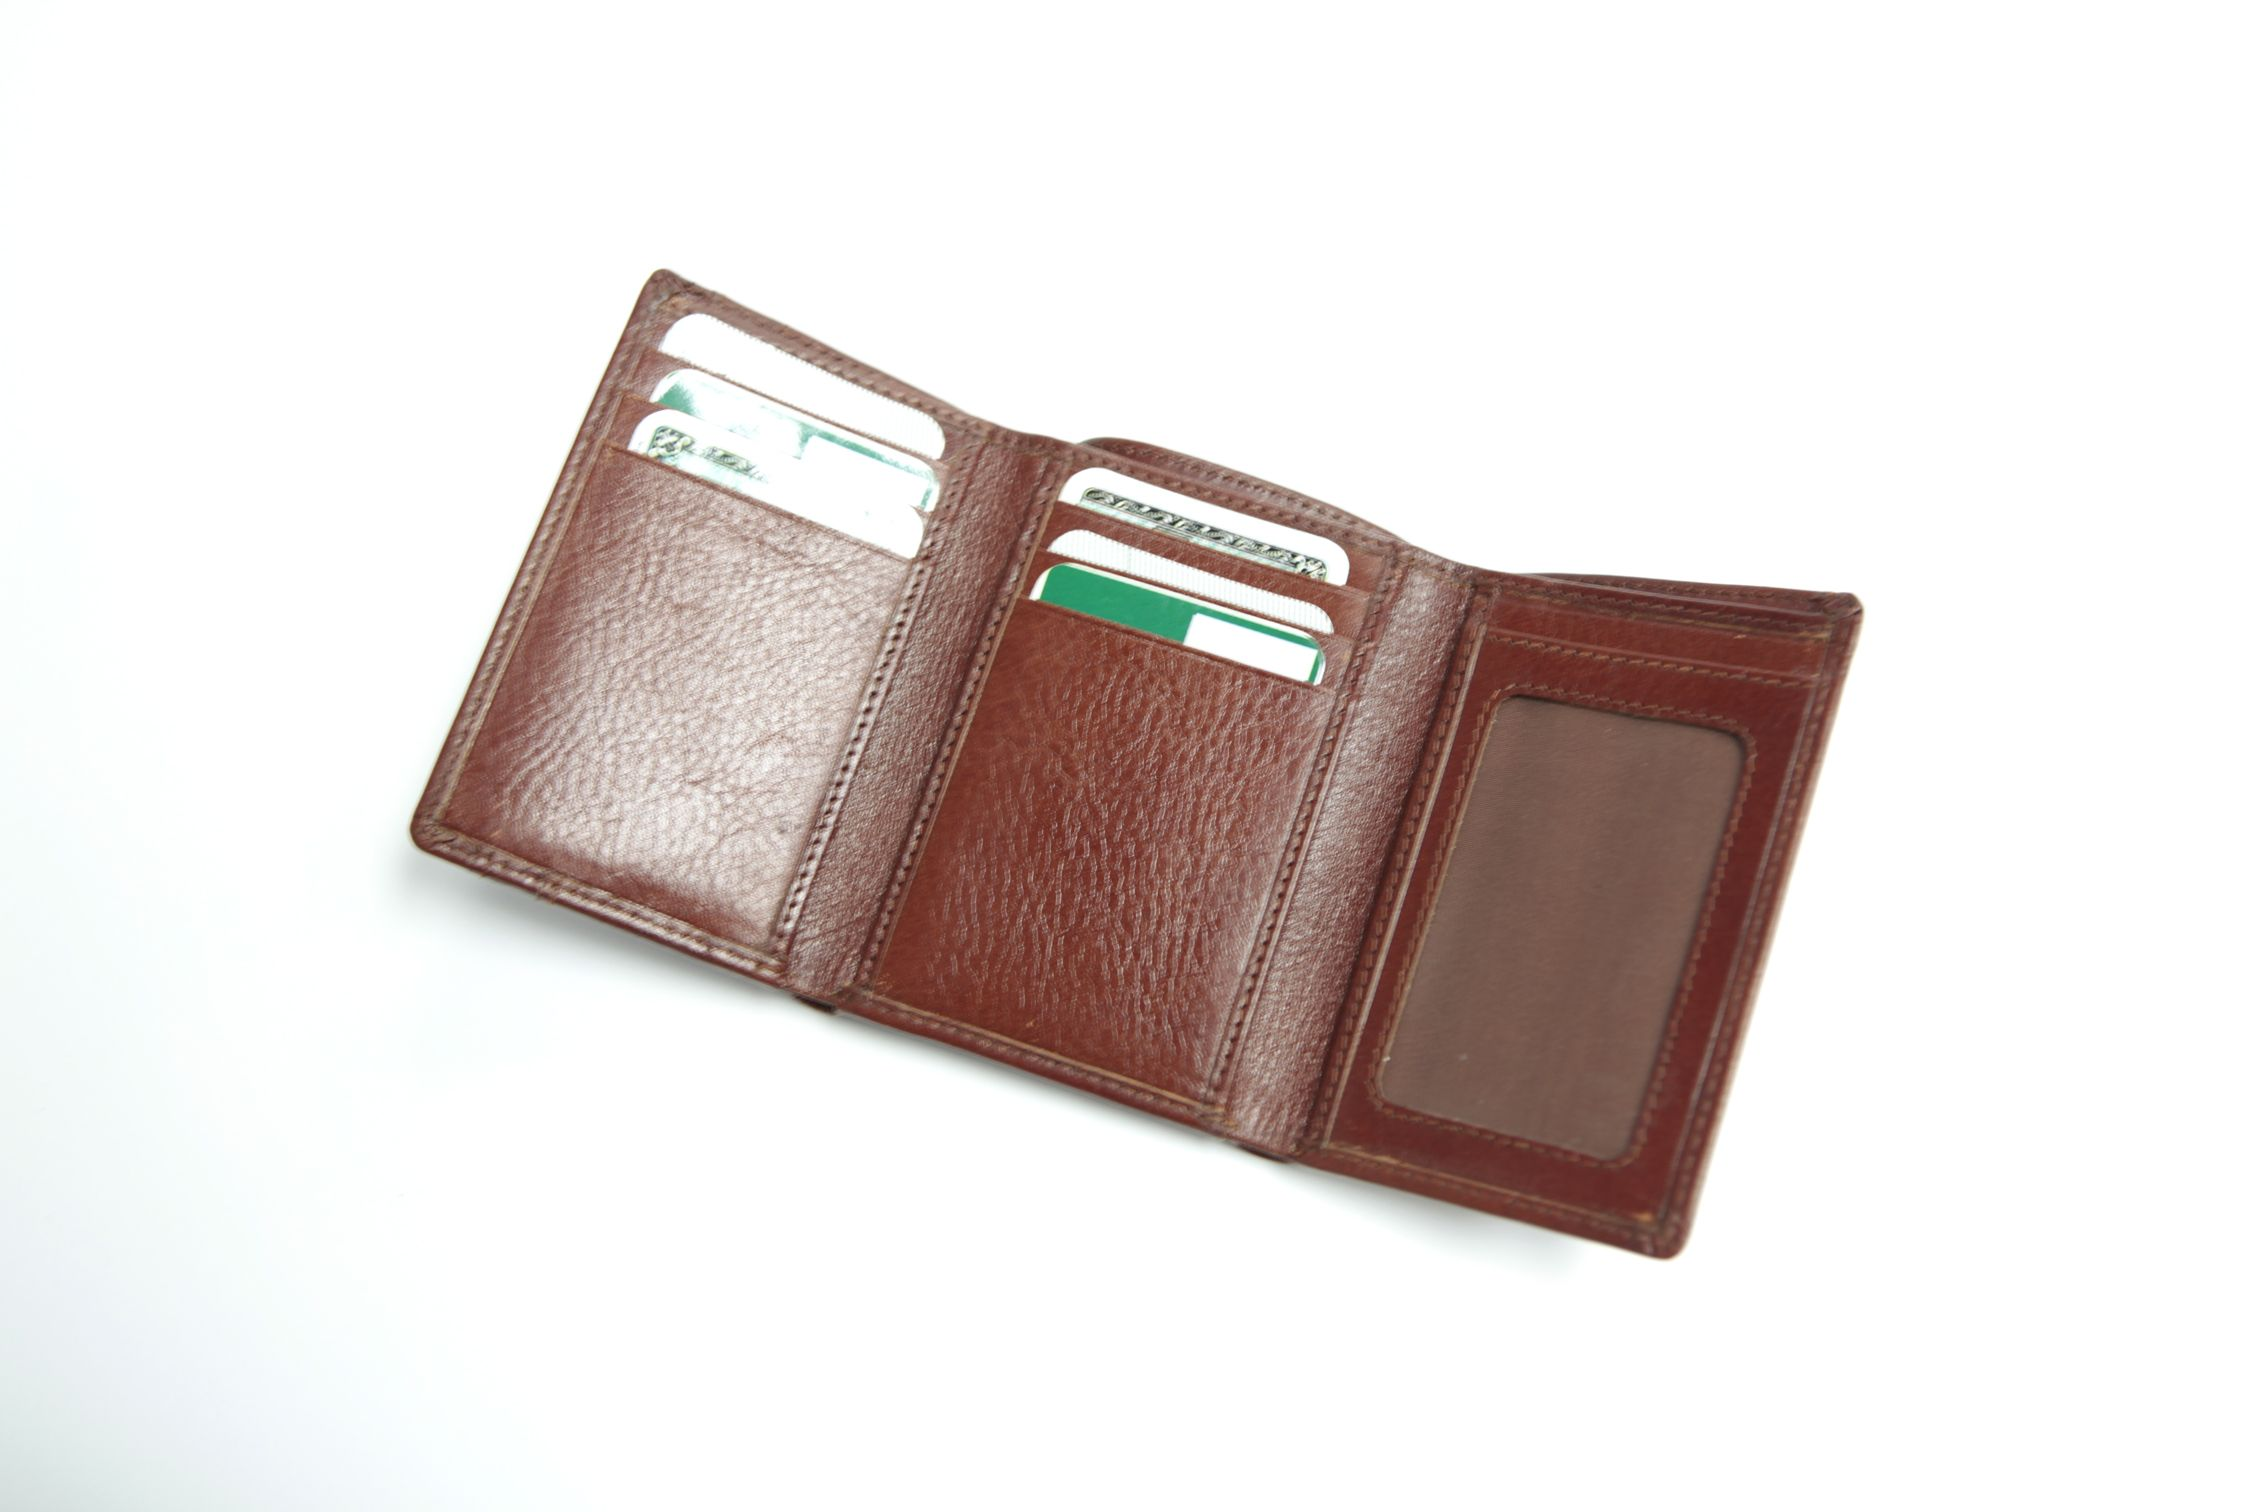 #LEATHER WALLET - The Albury Tan Leather Wallet